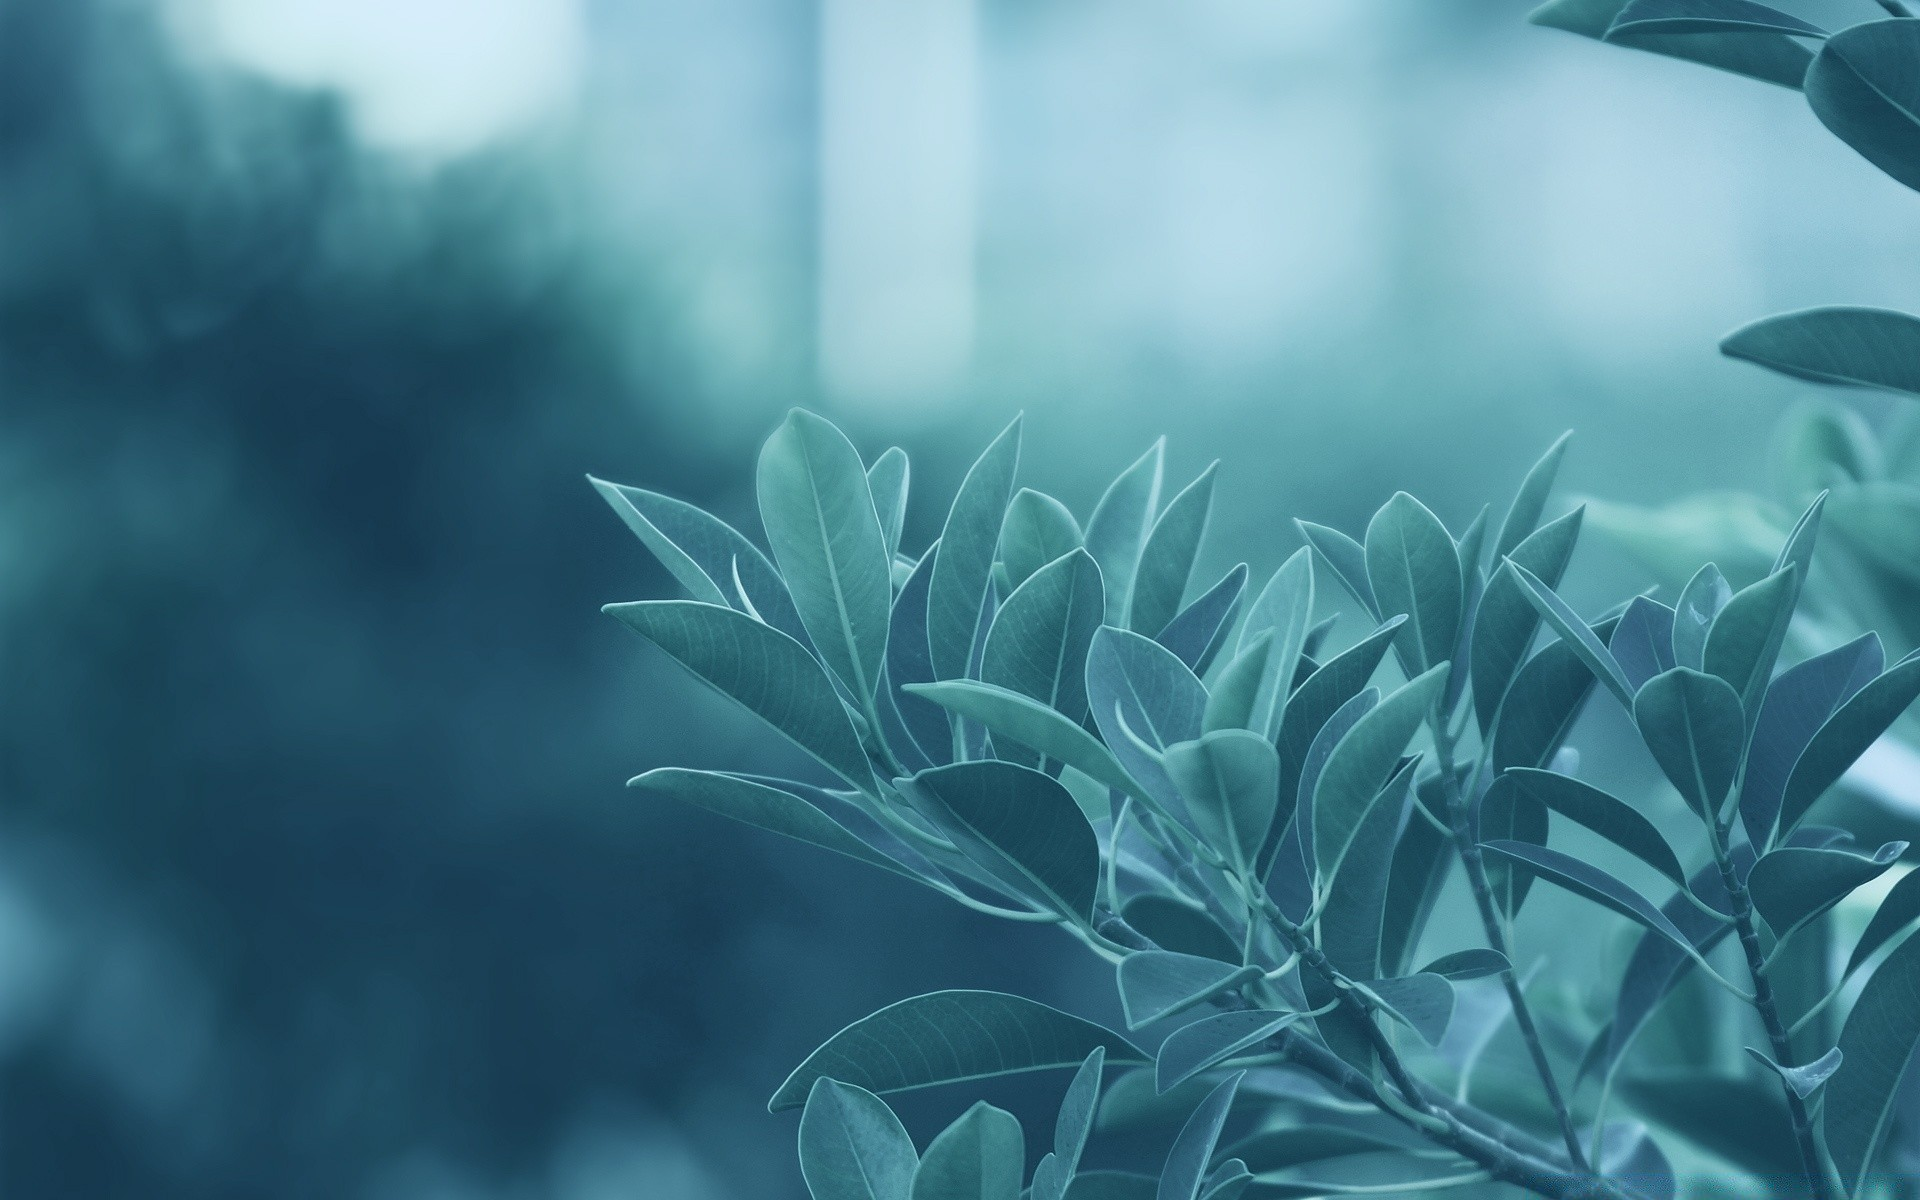 Blue Leaves IPhone Wallpapers For Free